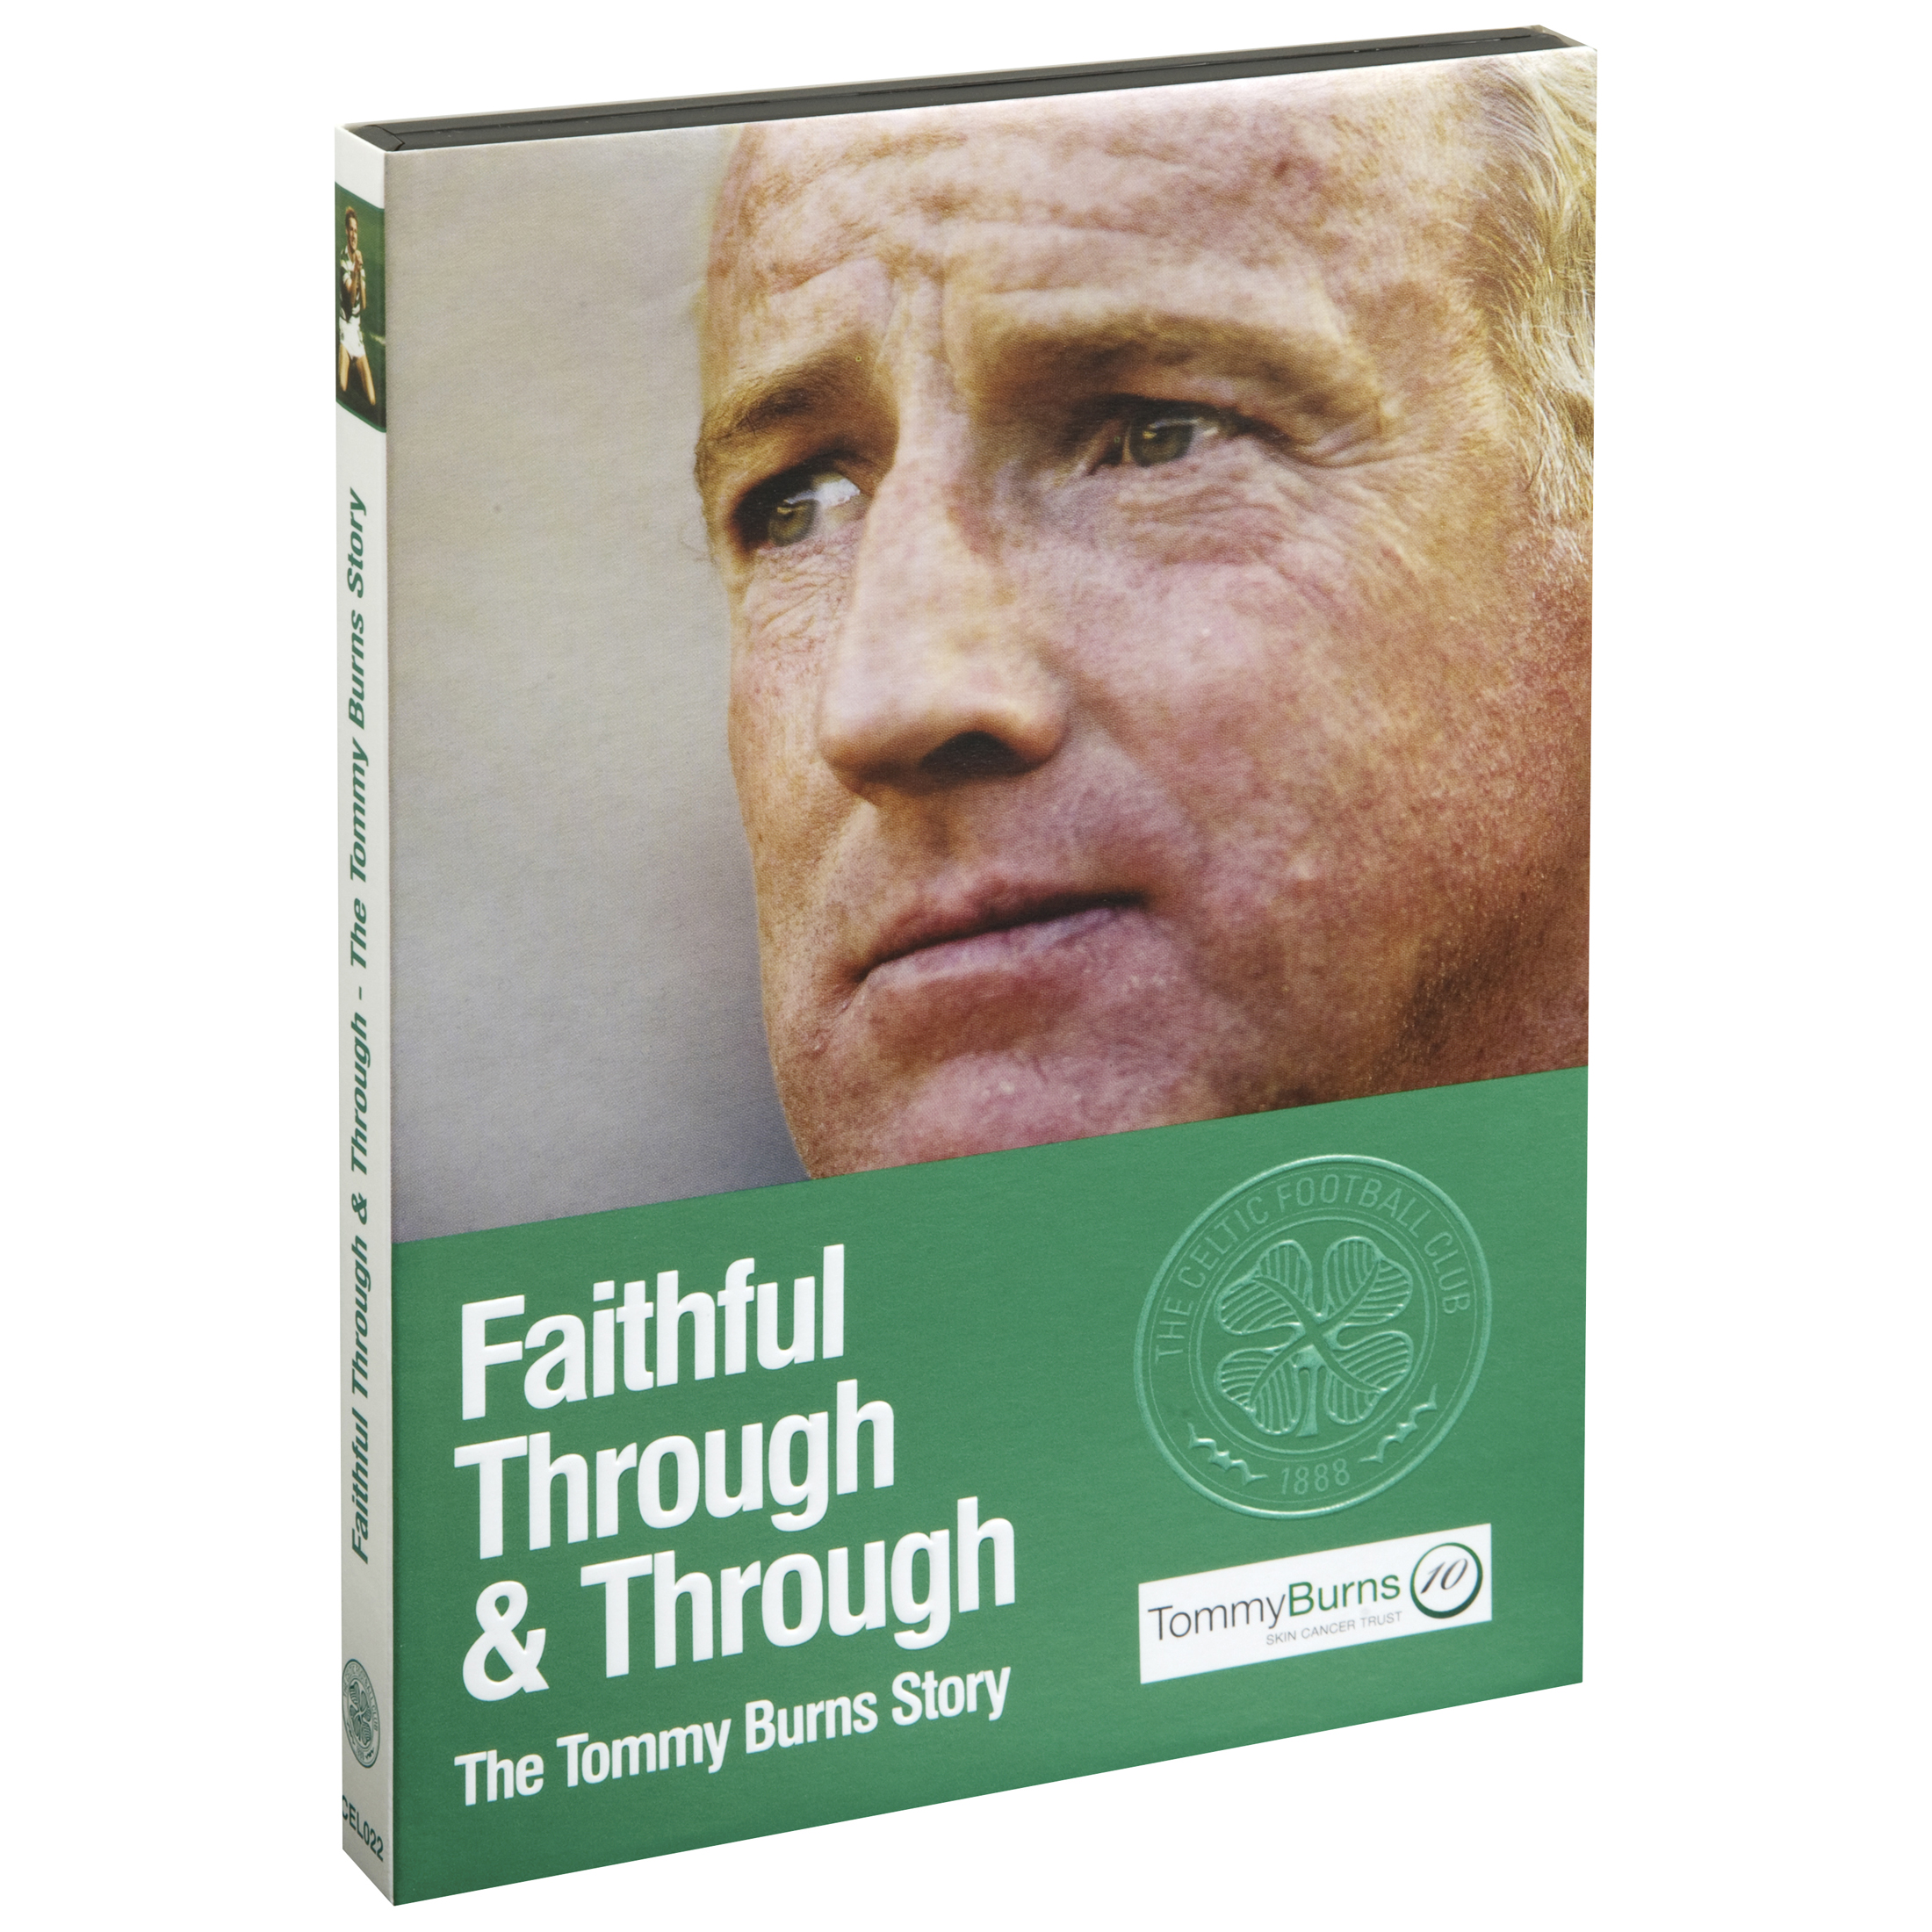 Celtic Faithful Through and Through - The Tommy Burns Story - 2 Disc DVD